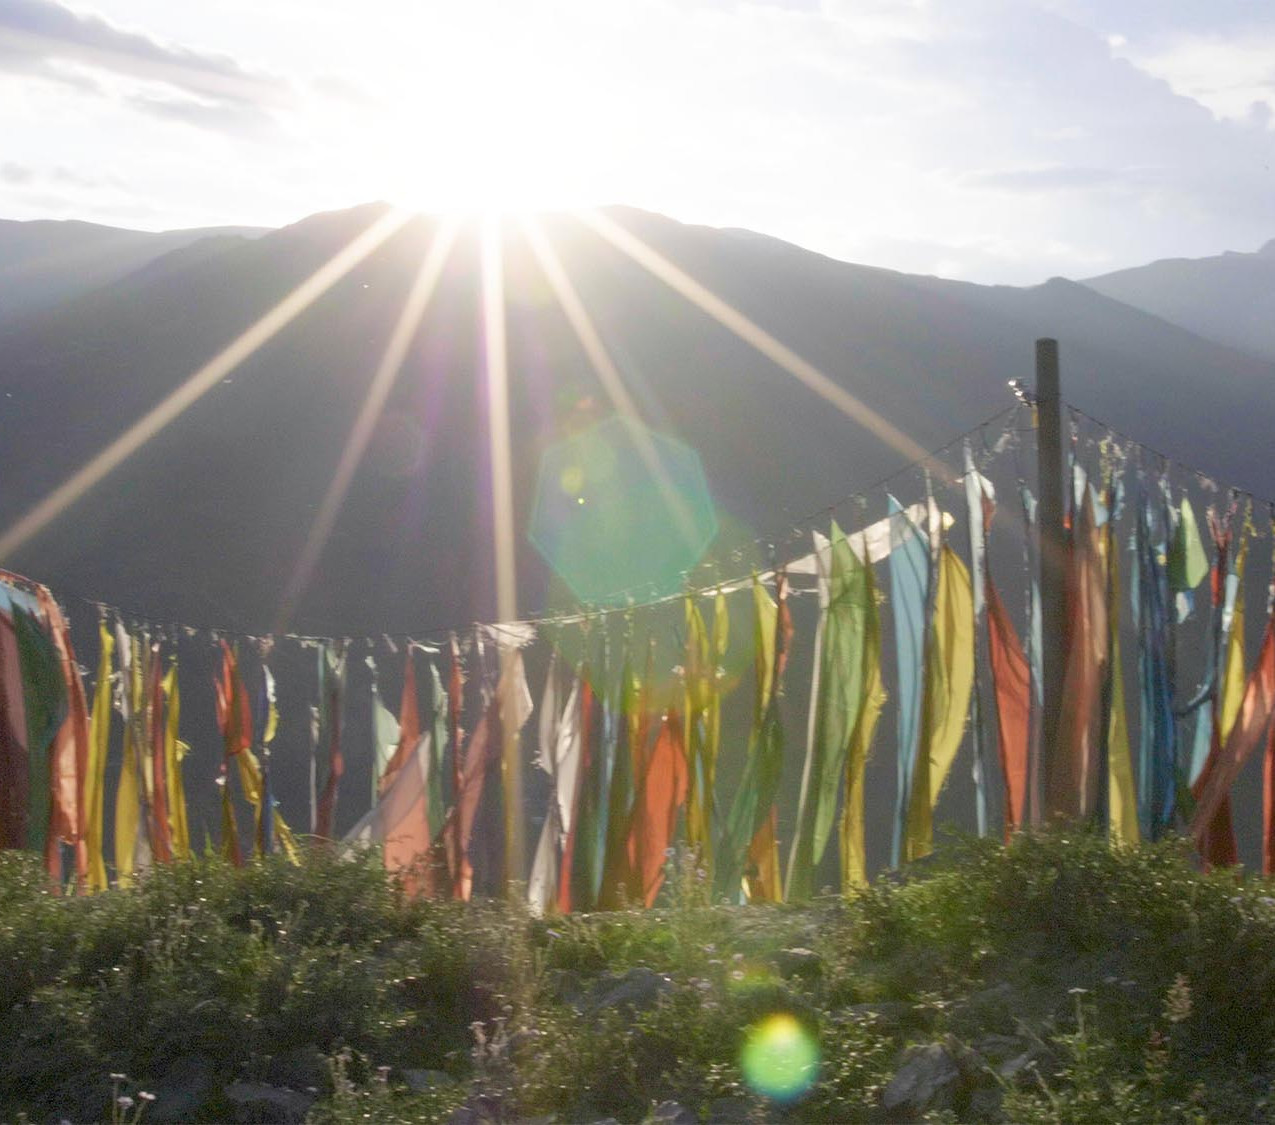 Prayer flags off the side of a mountain biking trail.